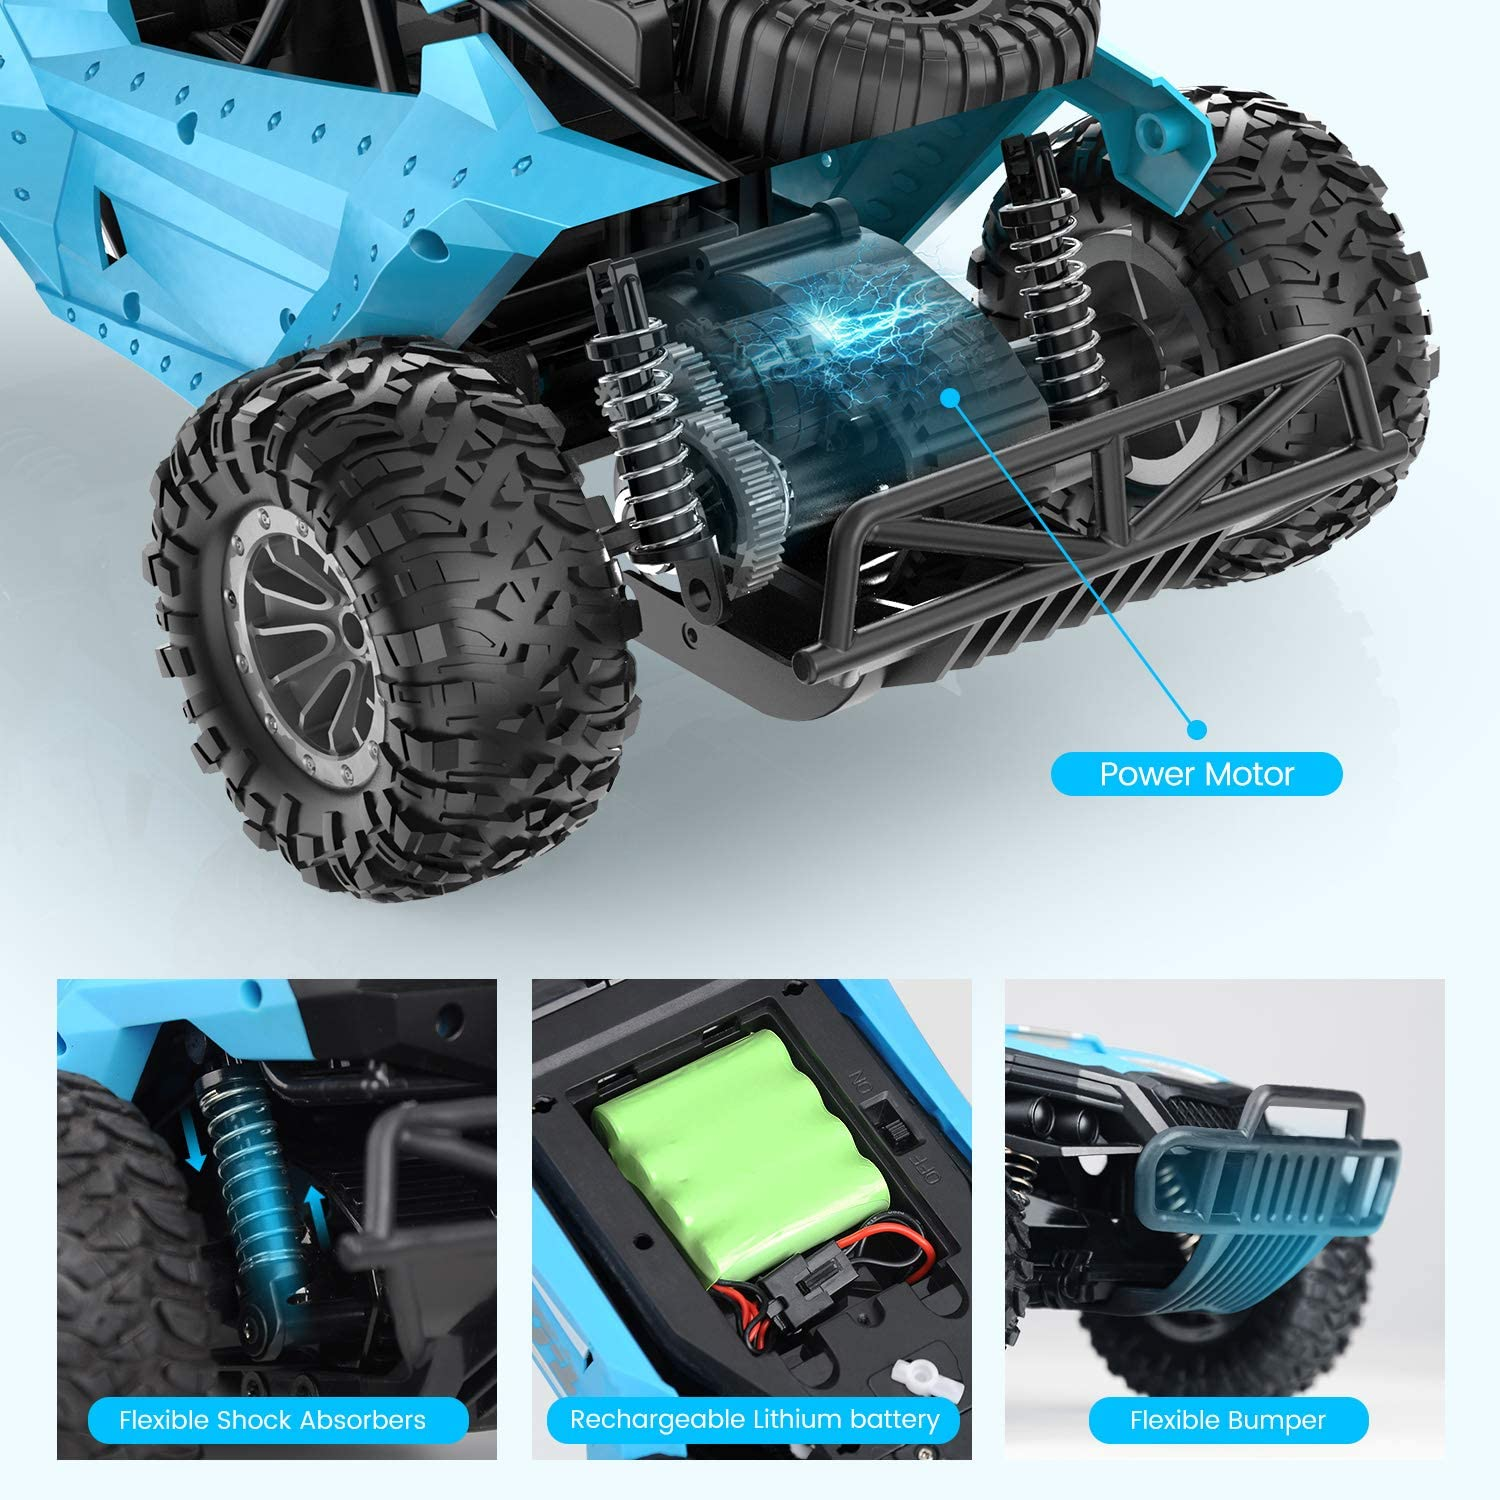 Tomzon Remote Control Car 2.4GHz Off Road Trucks with Shock Absorbers Anti-Slip Tires RC Toy for Kids /& Adults 1//16 Scale High Speed Car 30 Minutes of Battery Life